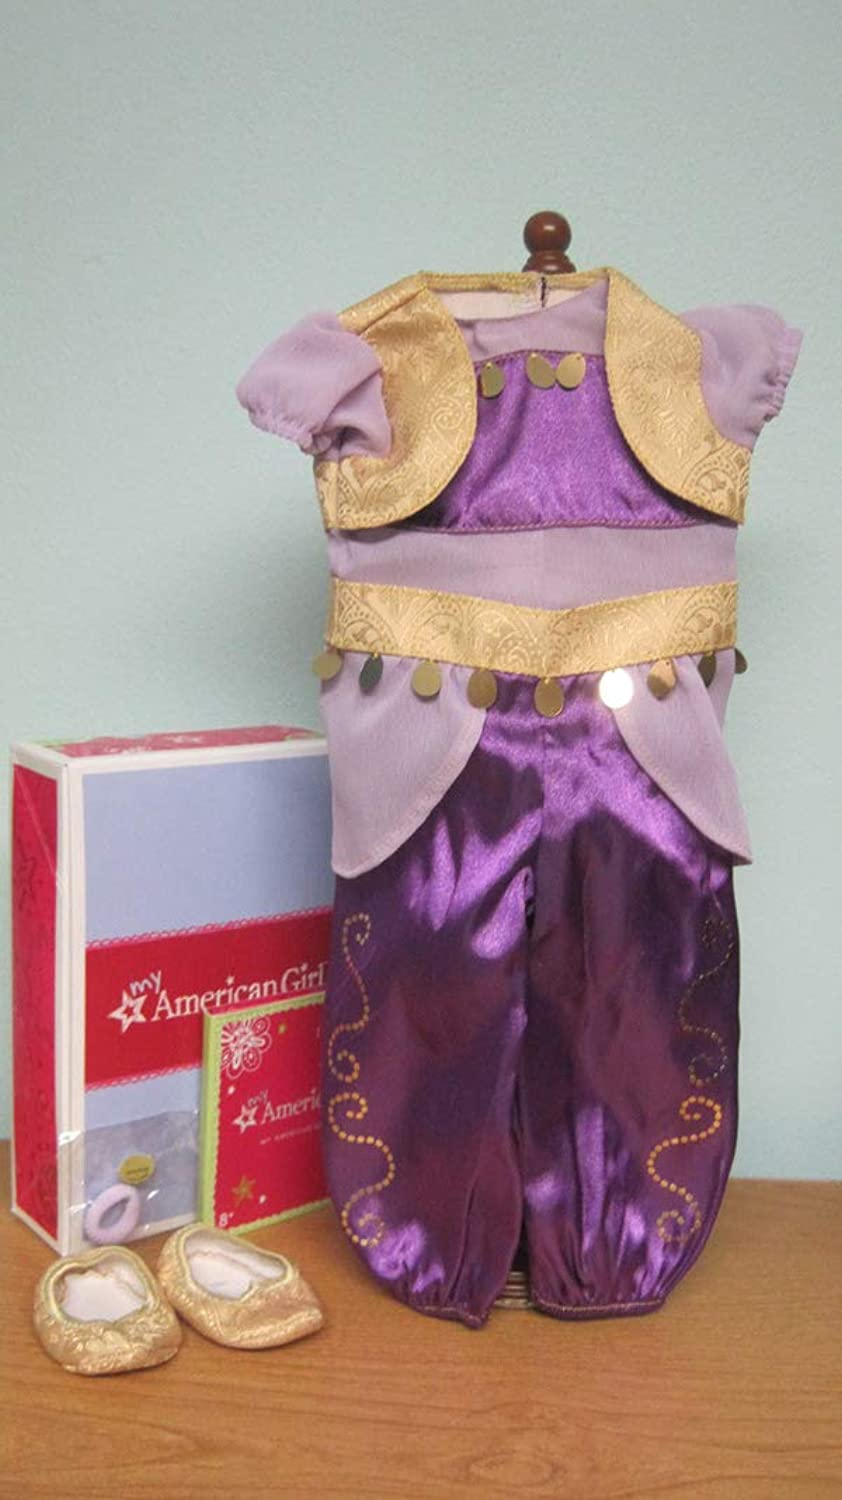 American Girl My AG Genie Outfit for Dolls + Charm Doll Not Included by American Girl